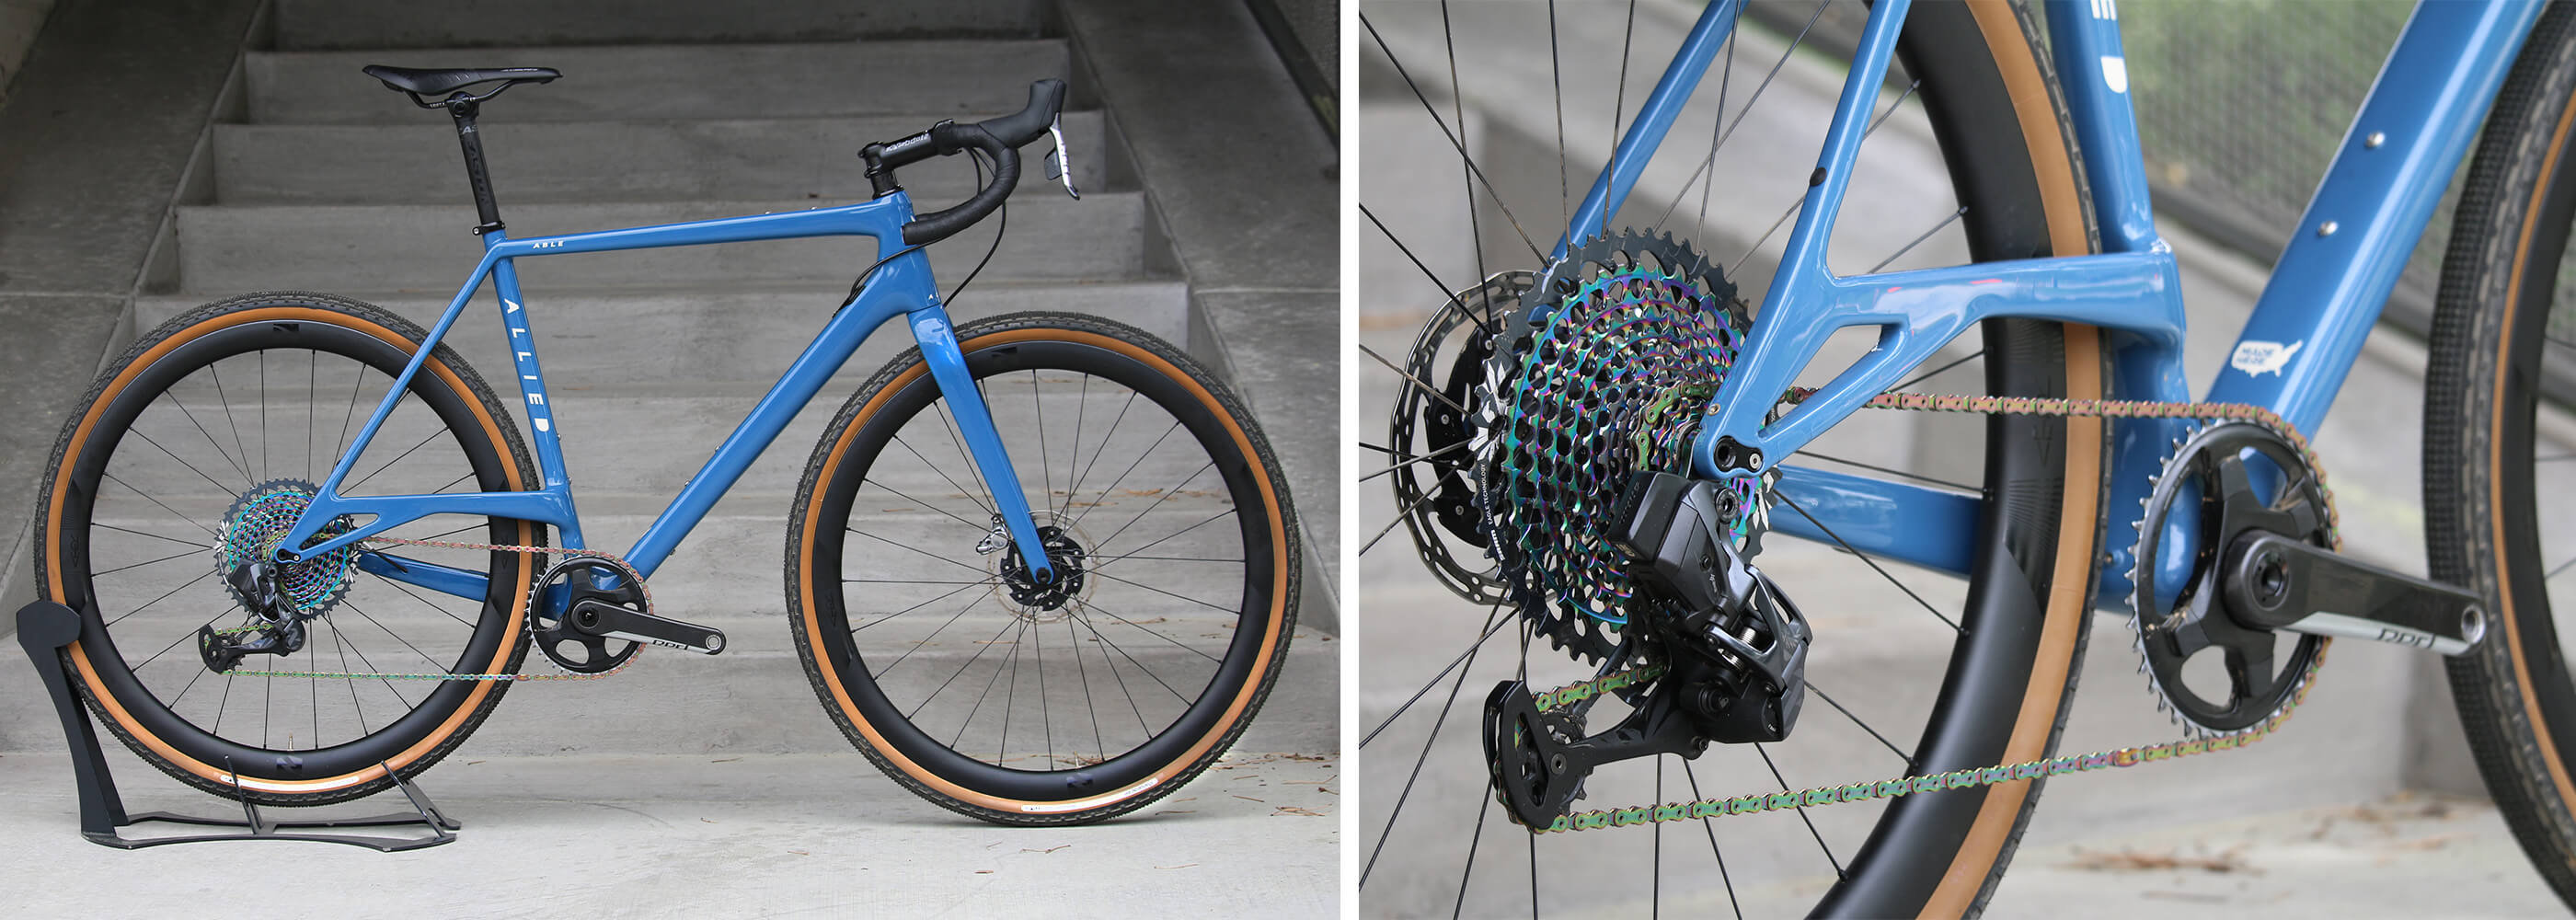 Allied Able Gravel Bike Contender Bicycles - SRAM Red AXS